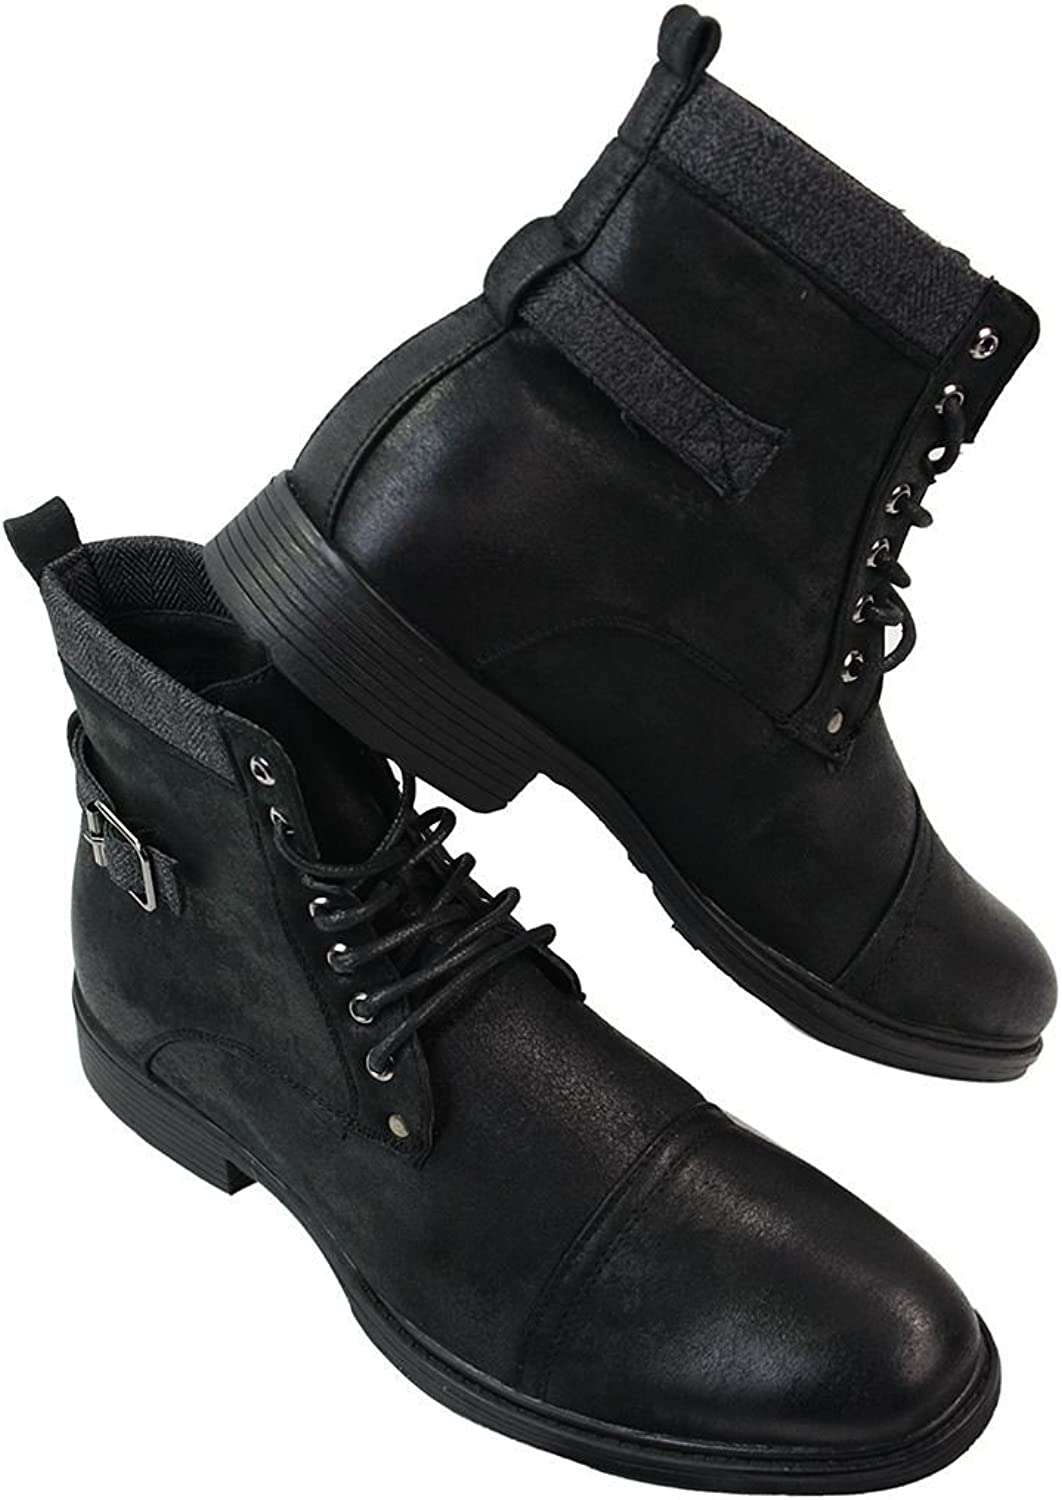 Glx herr svart bspringaaa Lace Up Up Up Ankle Army Punk Rock Casual stövlar Fleece läder  rabatt